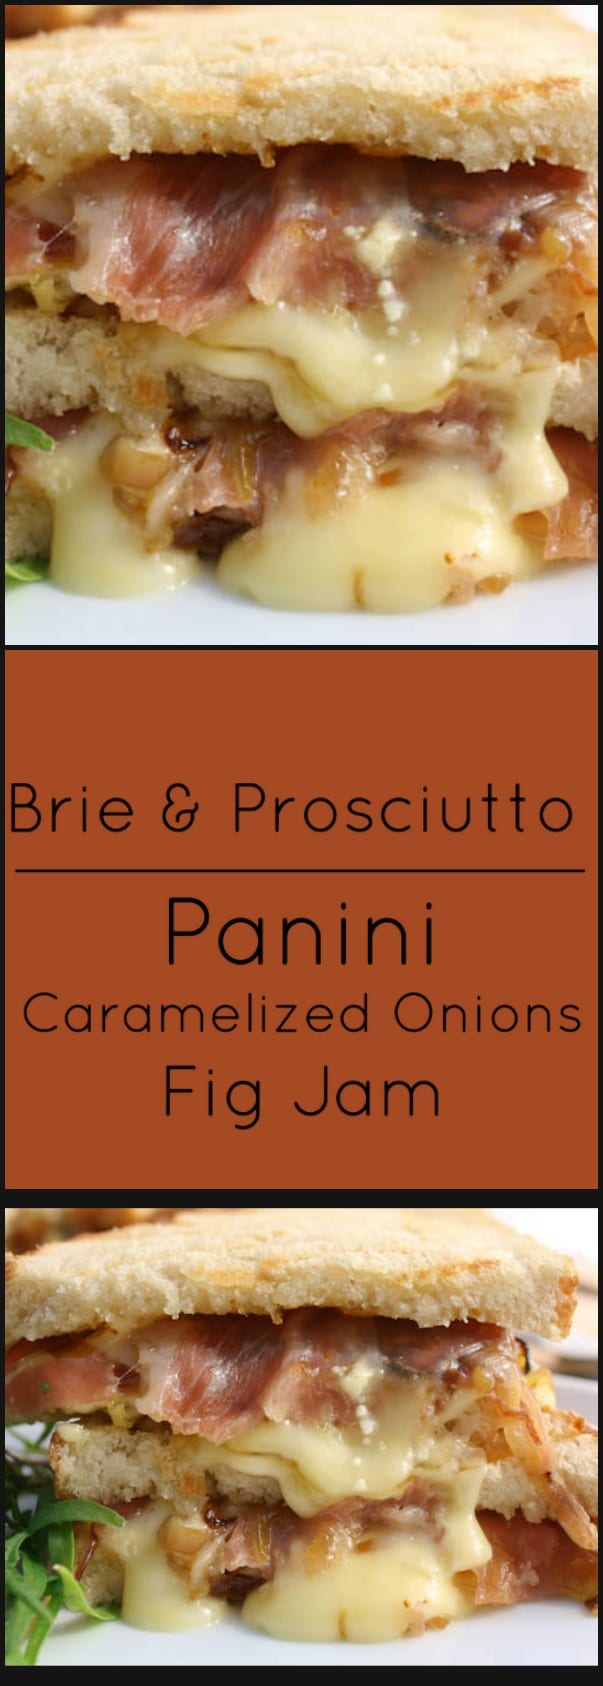 Brie and Prosciutto Panini with Caramelized Onions and Fig Jam.